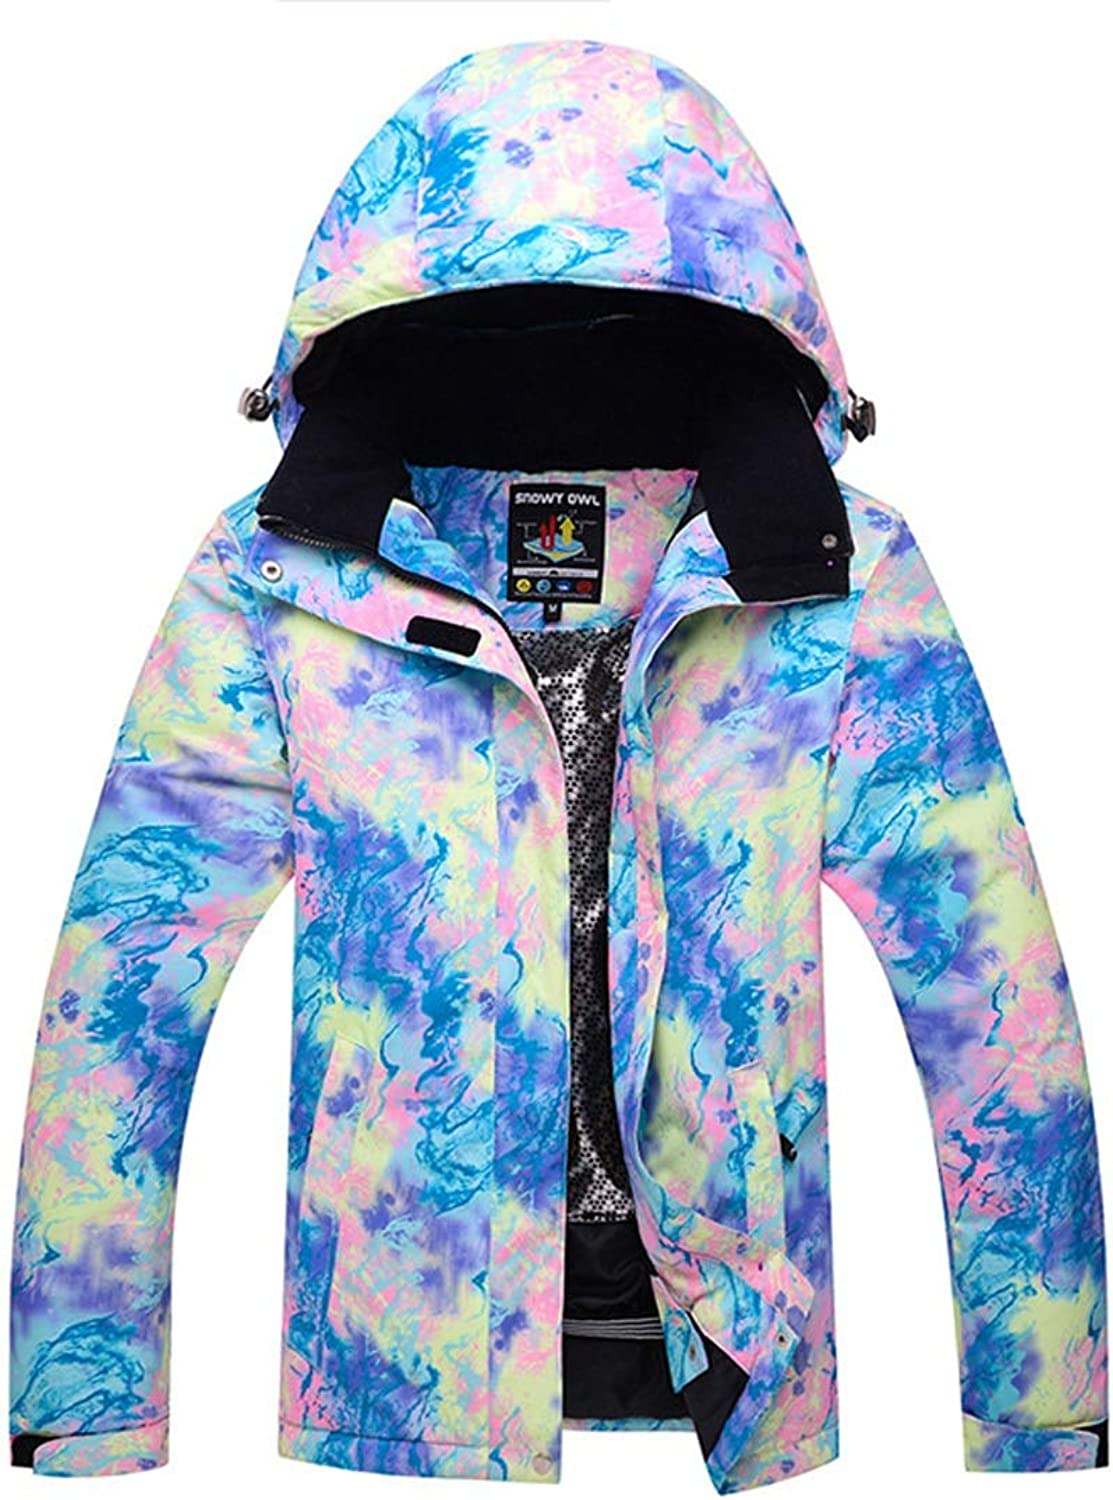 CEFULTY Women's Windproof Ski Jacket Outdoor Warm Snowboard